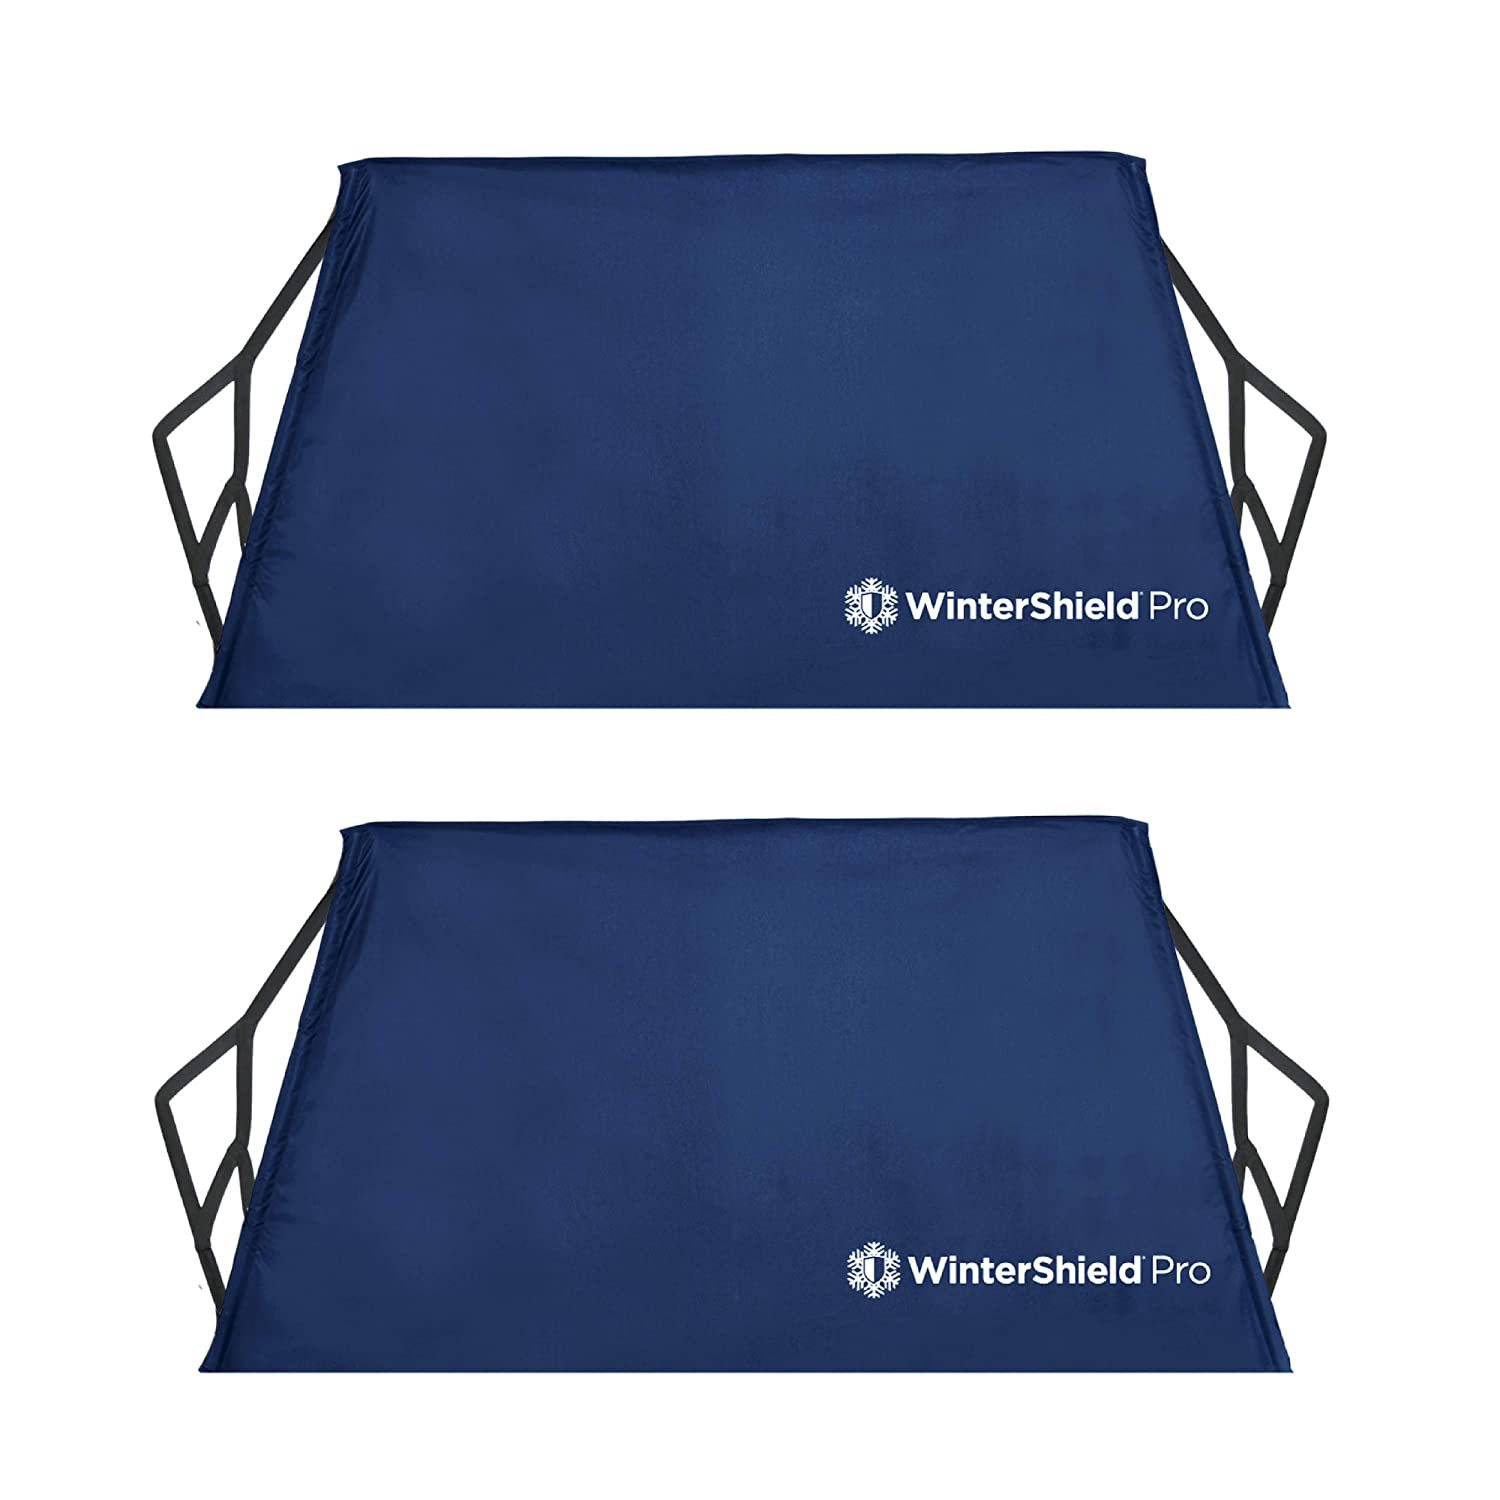 WinterShield PRO (2 Pack) | Winter Windshield Cover with Quick-Dry Storage Sleeve, Protects Essential Viewing Area from Snow, Ice and Frost. (60' x 32') Ice and Frost. (60 x 32)